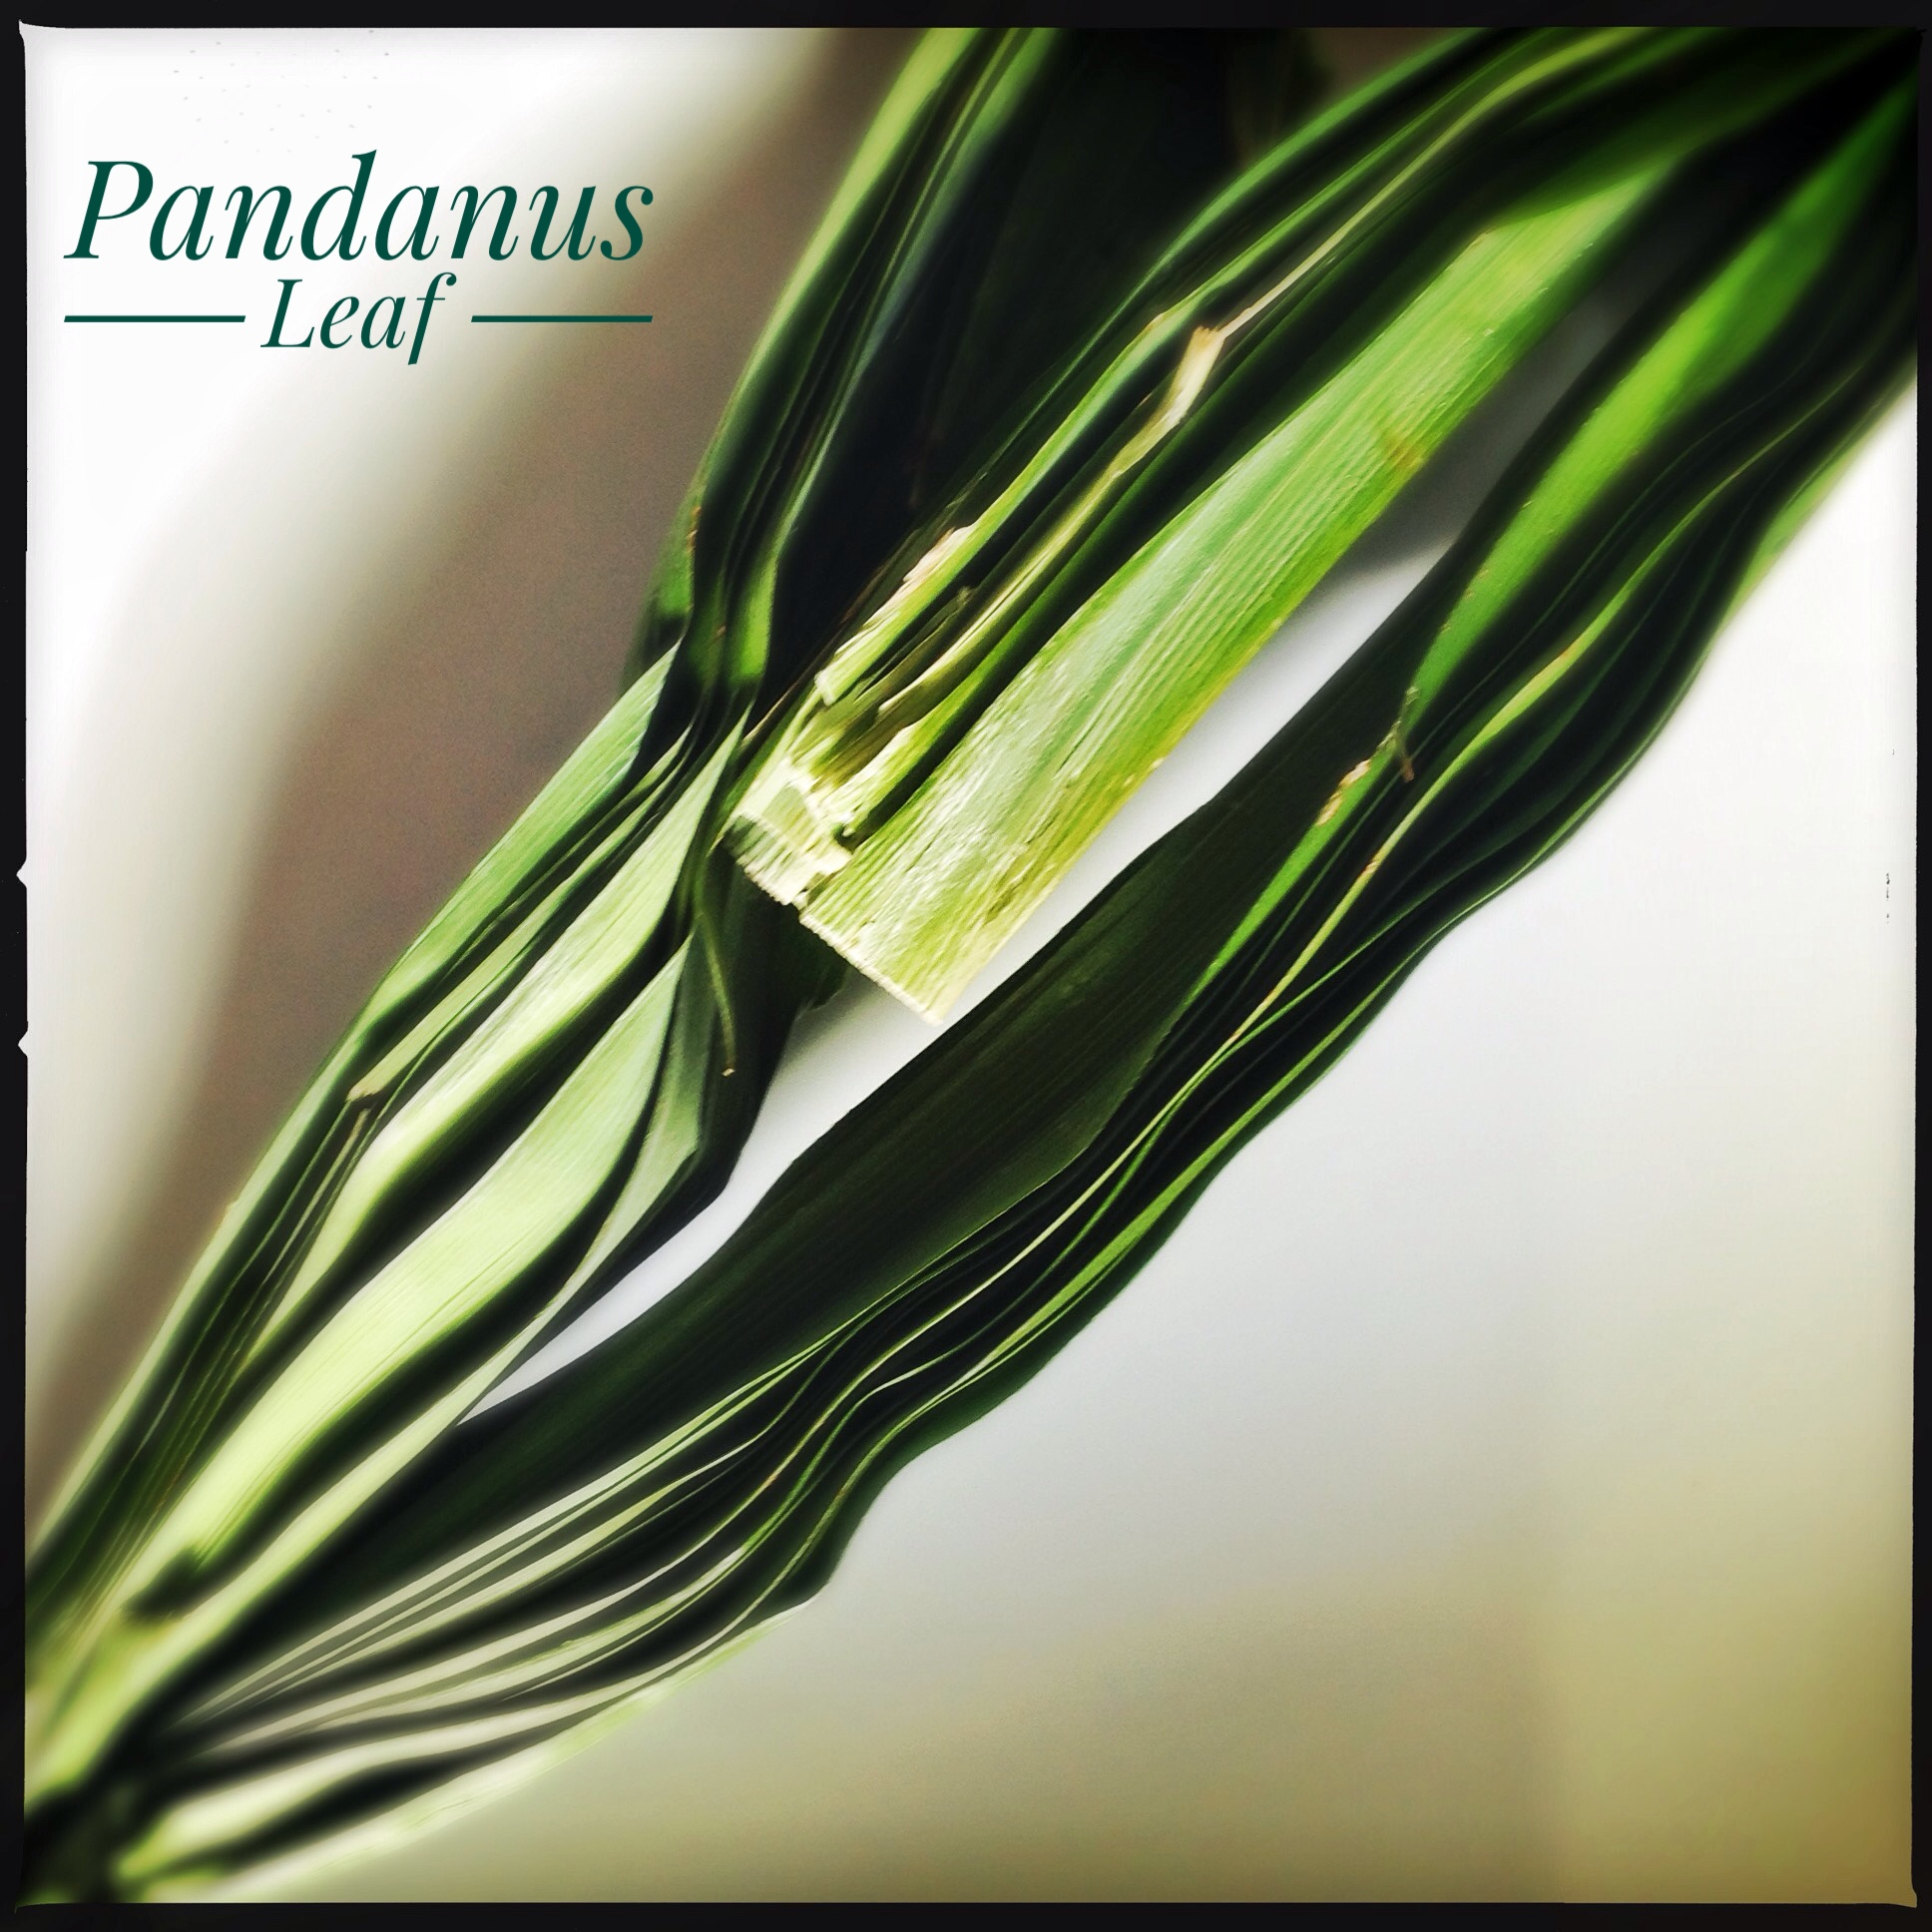 Ingredients: Pandanus | Pandan Leaf | Screwpine Leaf | Kewa